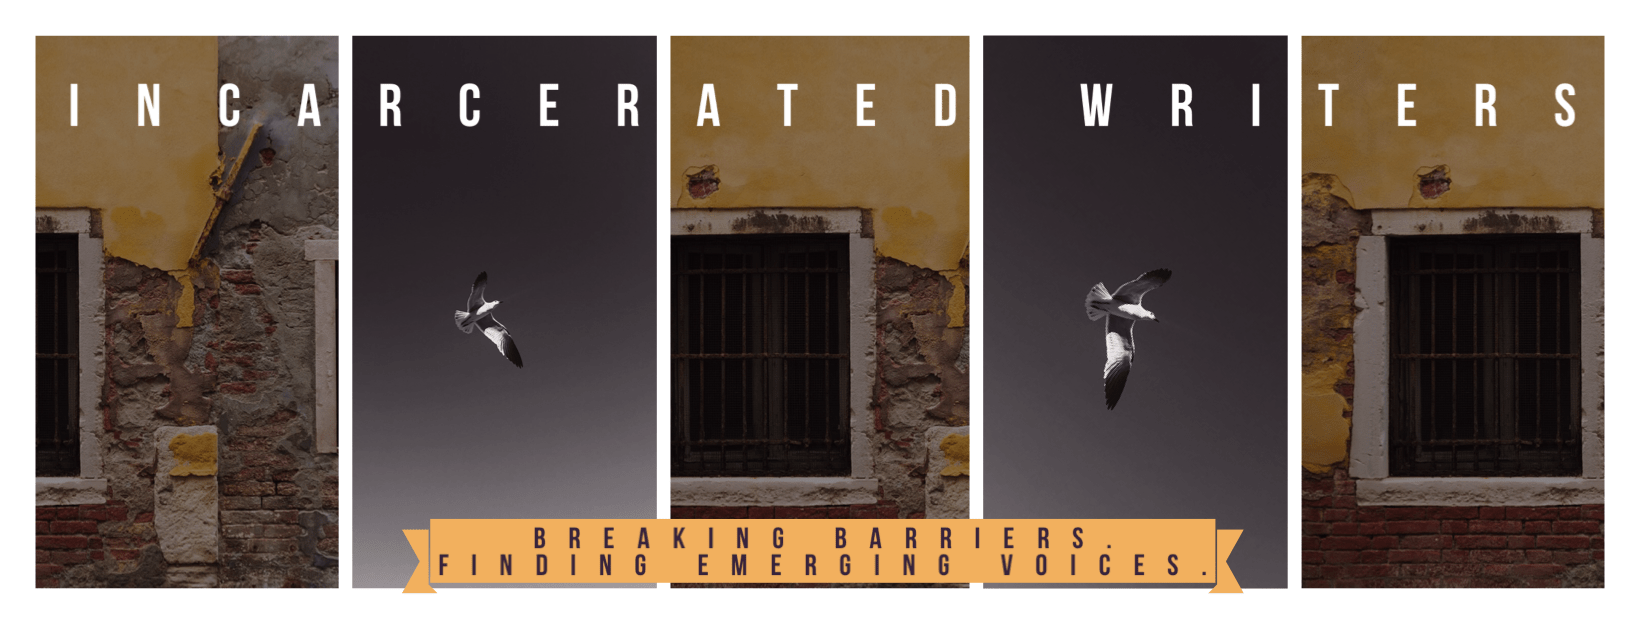 Incarcerated Writers, Breaking barriers finding emerging voices